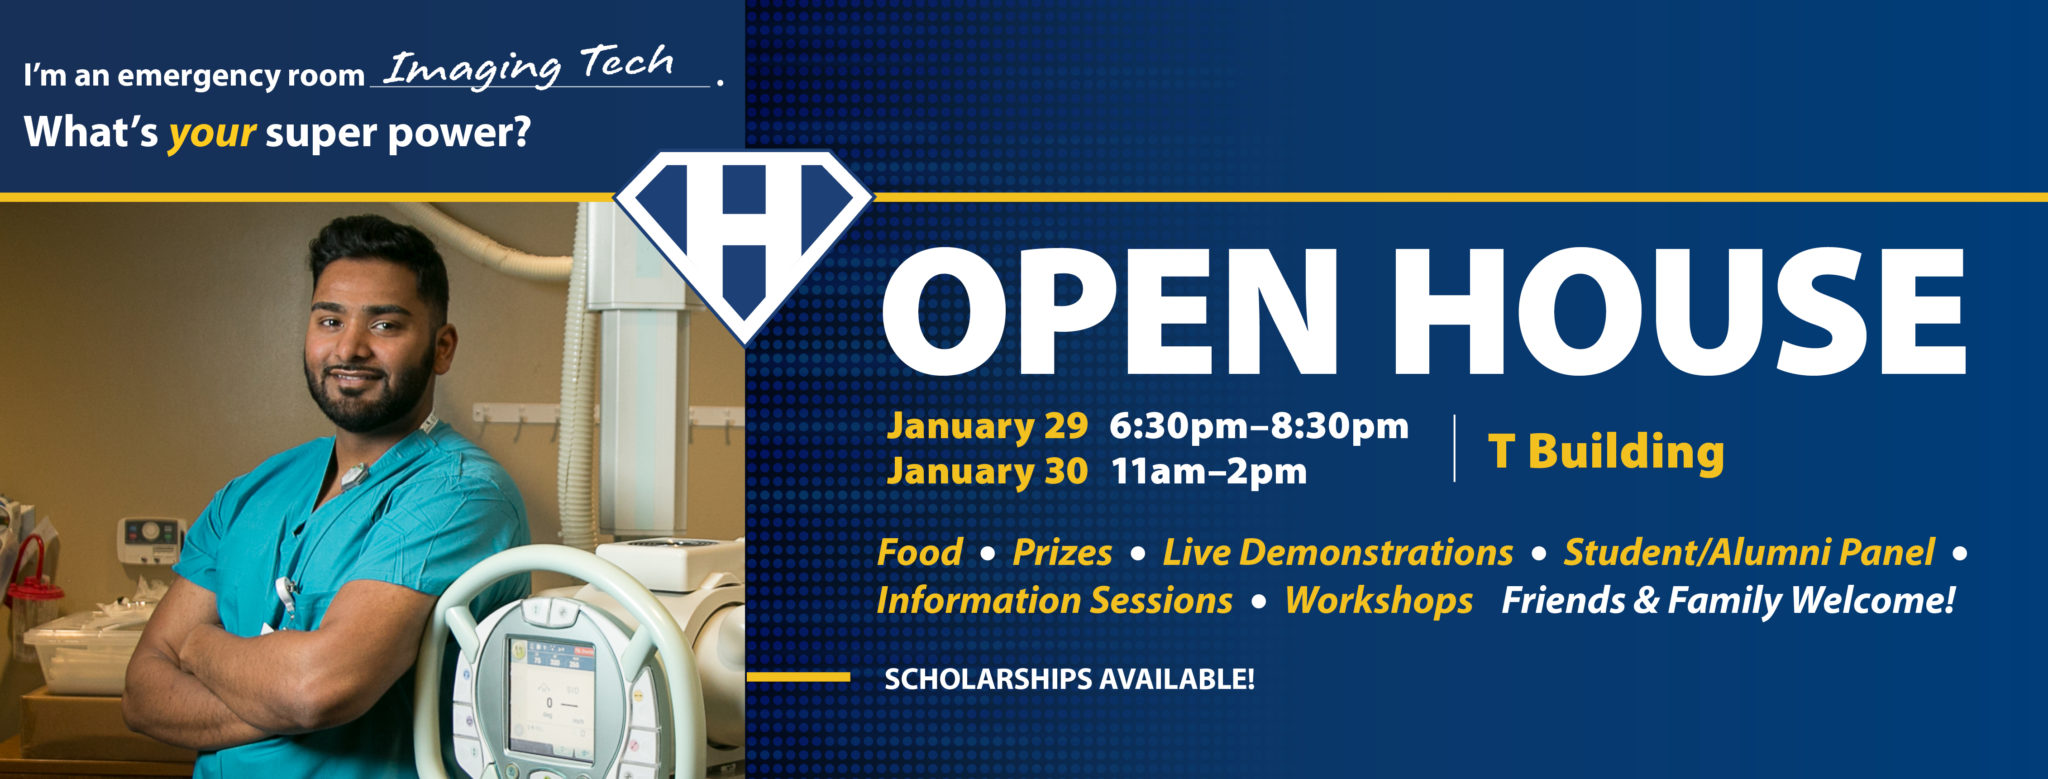 Open House Jan 29th and 30th